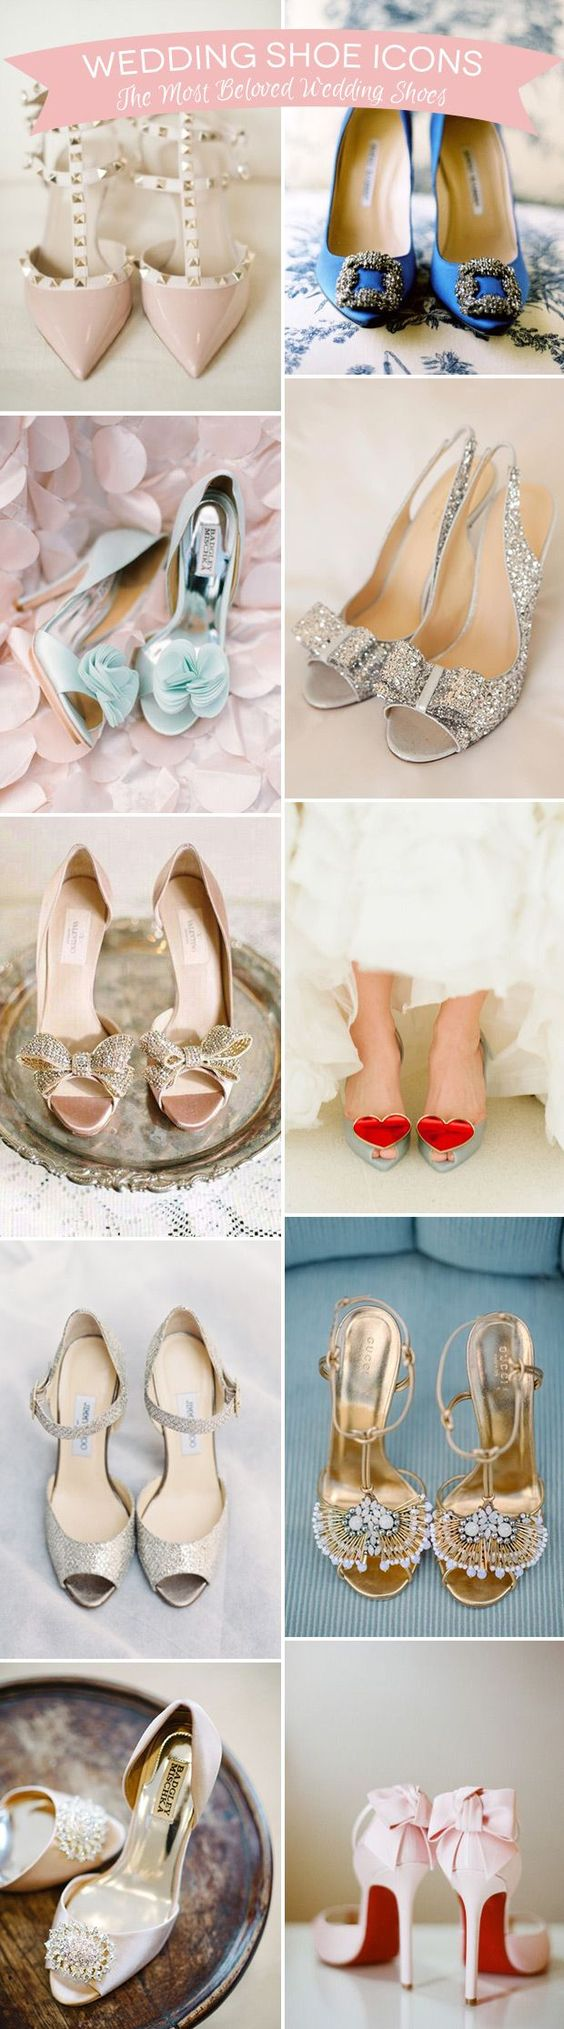 Wondering what the most popular wedding shoes in the world are? These are the all-time faves - iconic bridal shoes from Jimmy Choo, Valentino, Louboutin, Badgley Mischka & more...